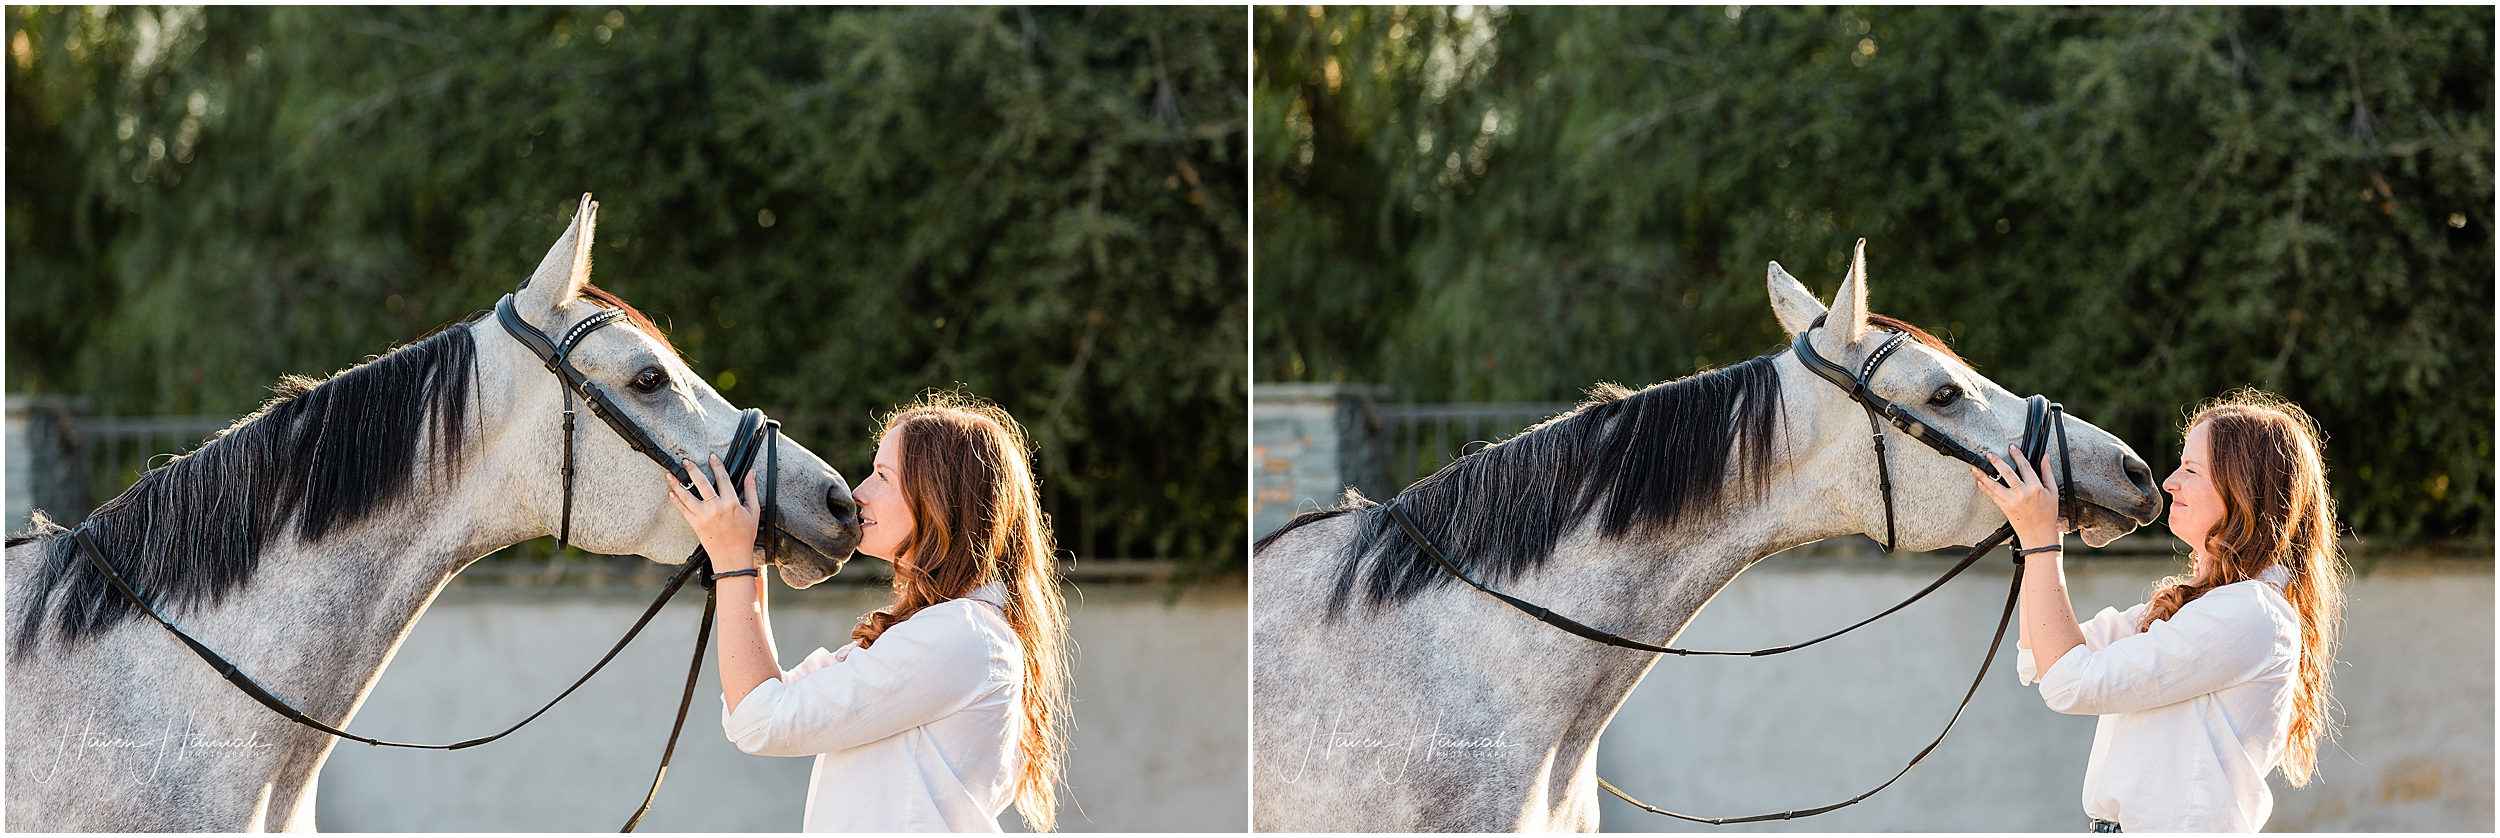 los-angeles-equestrian-portraits